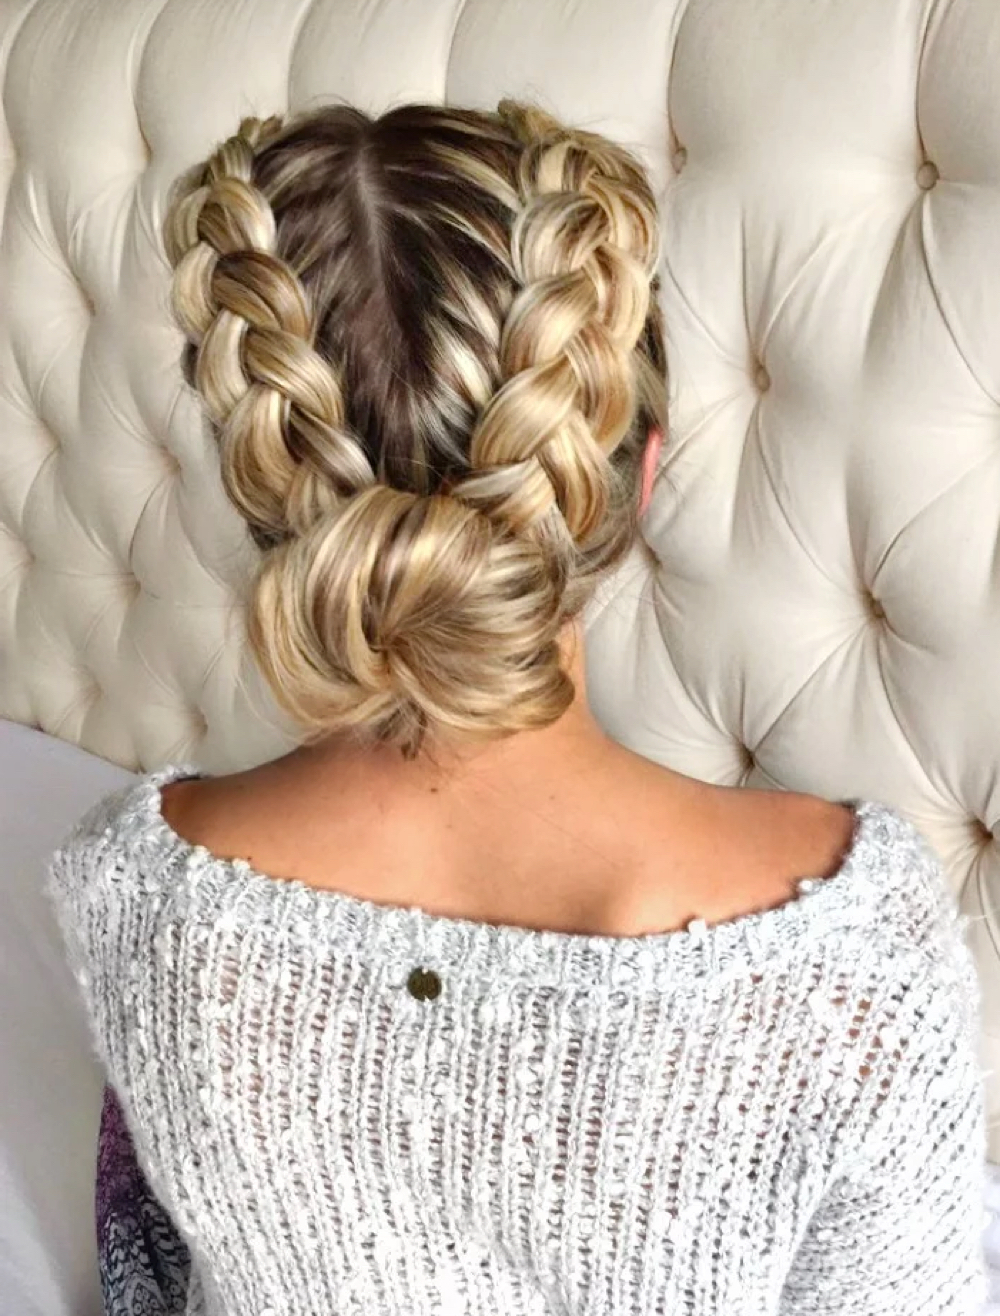 29 Gorgeous Braided Updo Ideas For 2019 For Widely Used Heart Shaped Fishtail Under Braid Hairstyles (View 2 of 20)